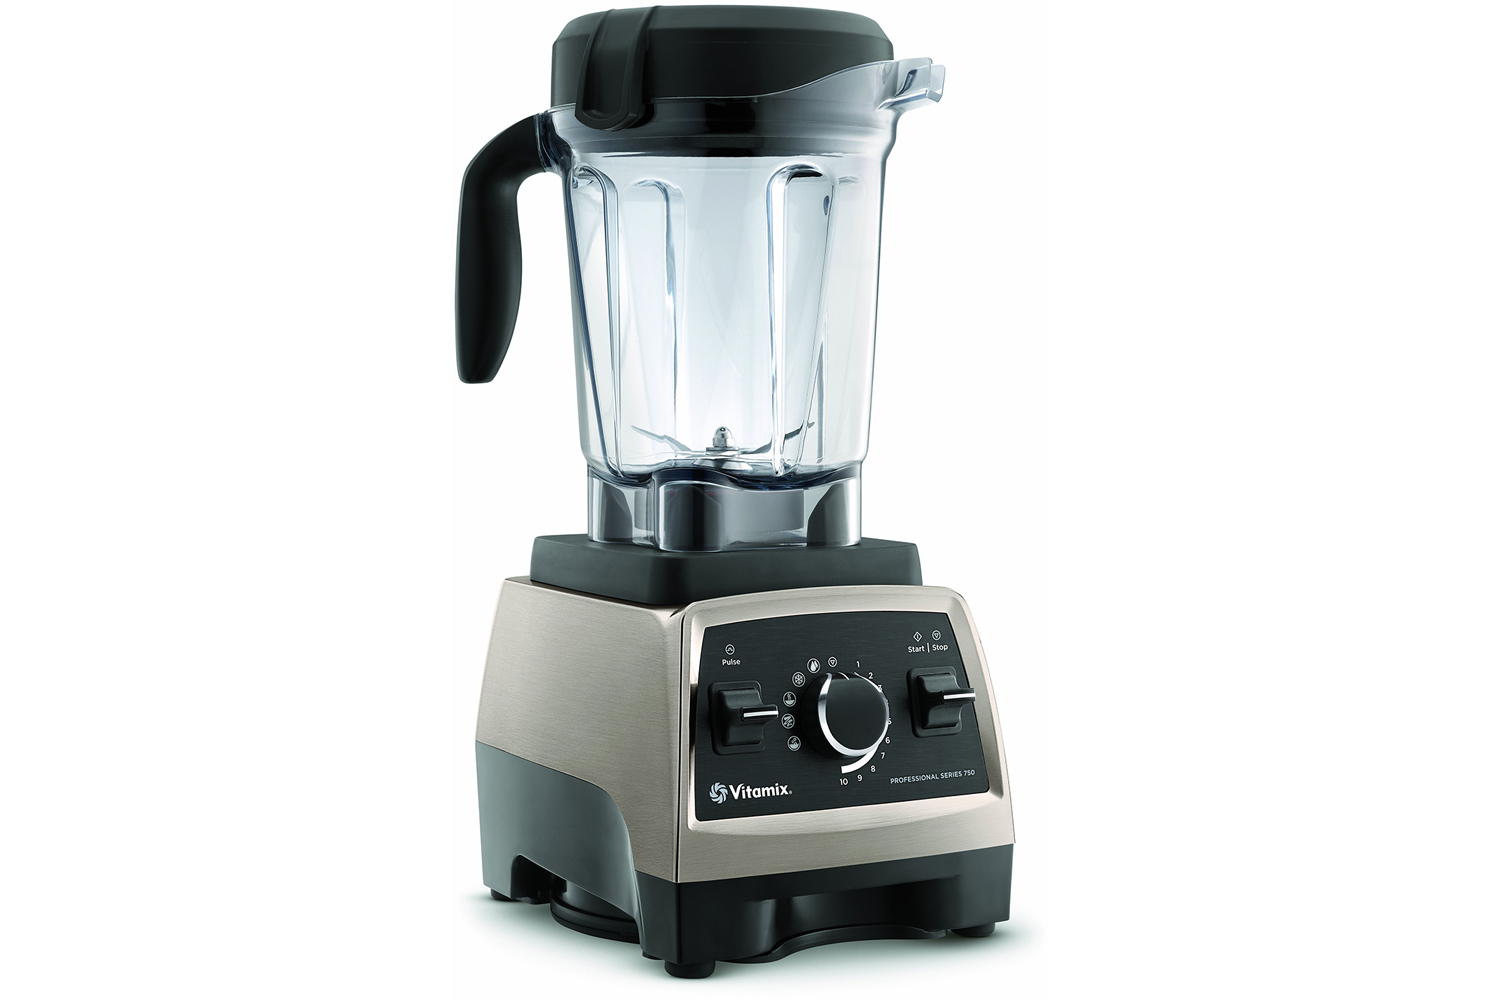 Vitamix Professional Series 750 w/64 oz. Container - Brushed Stainless Steel